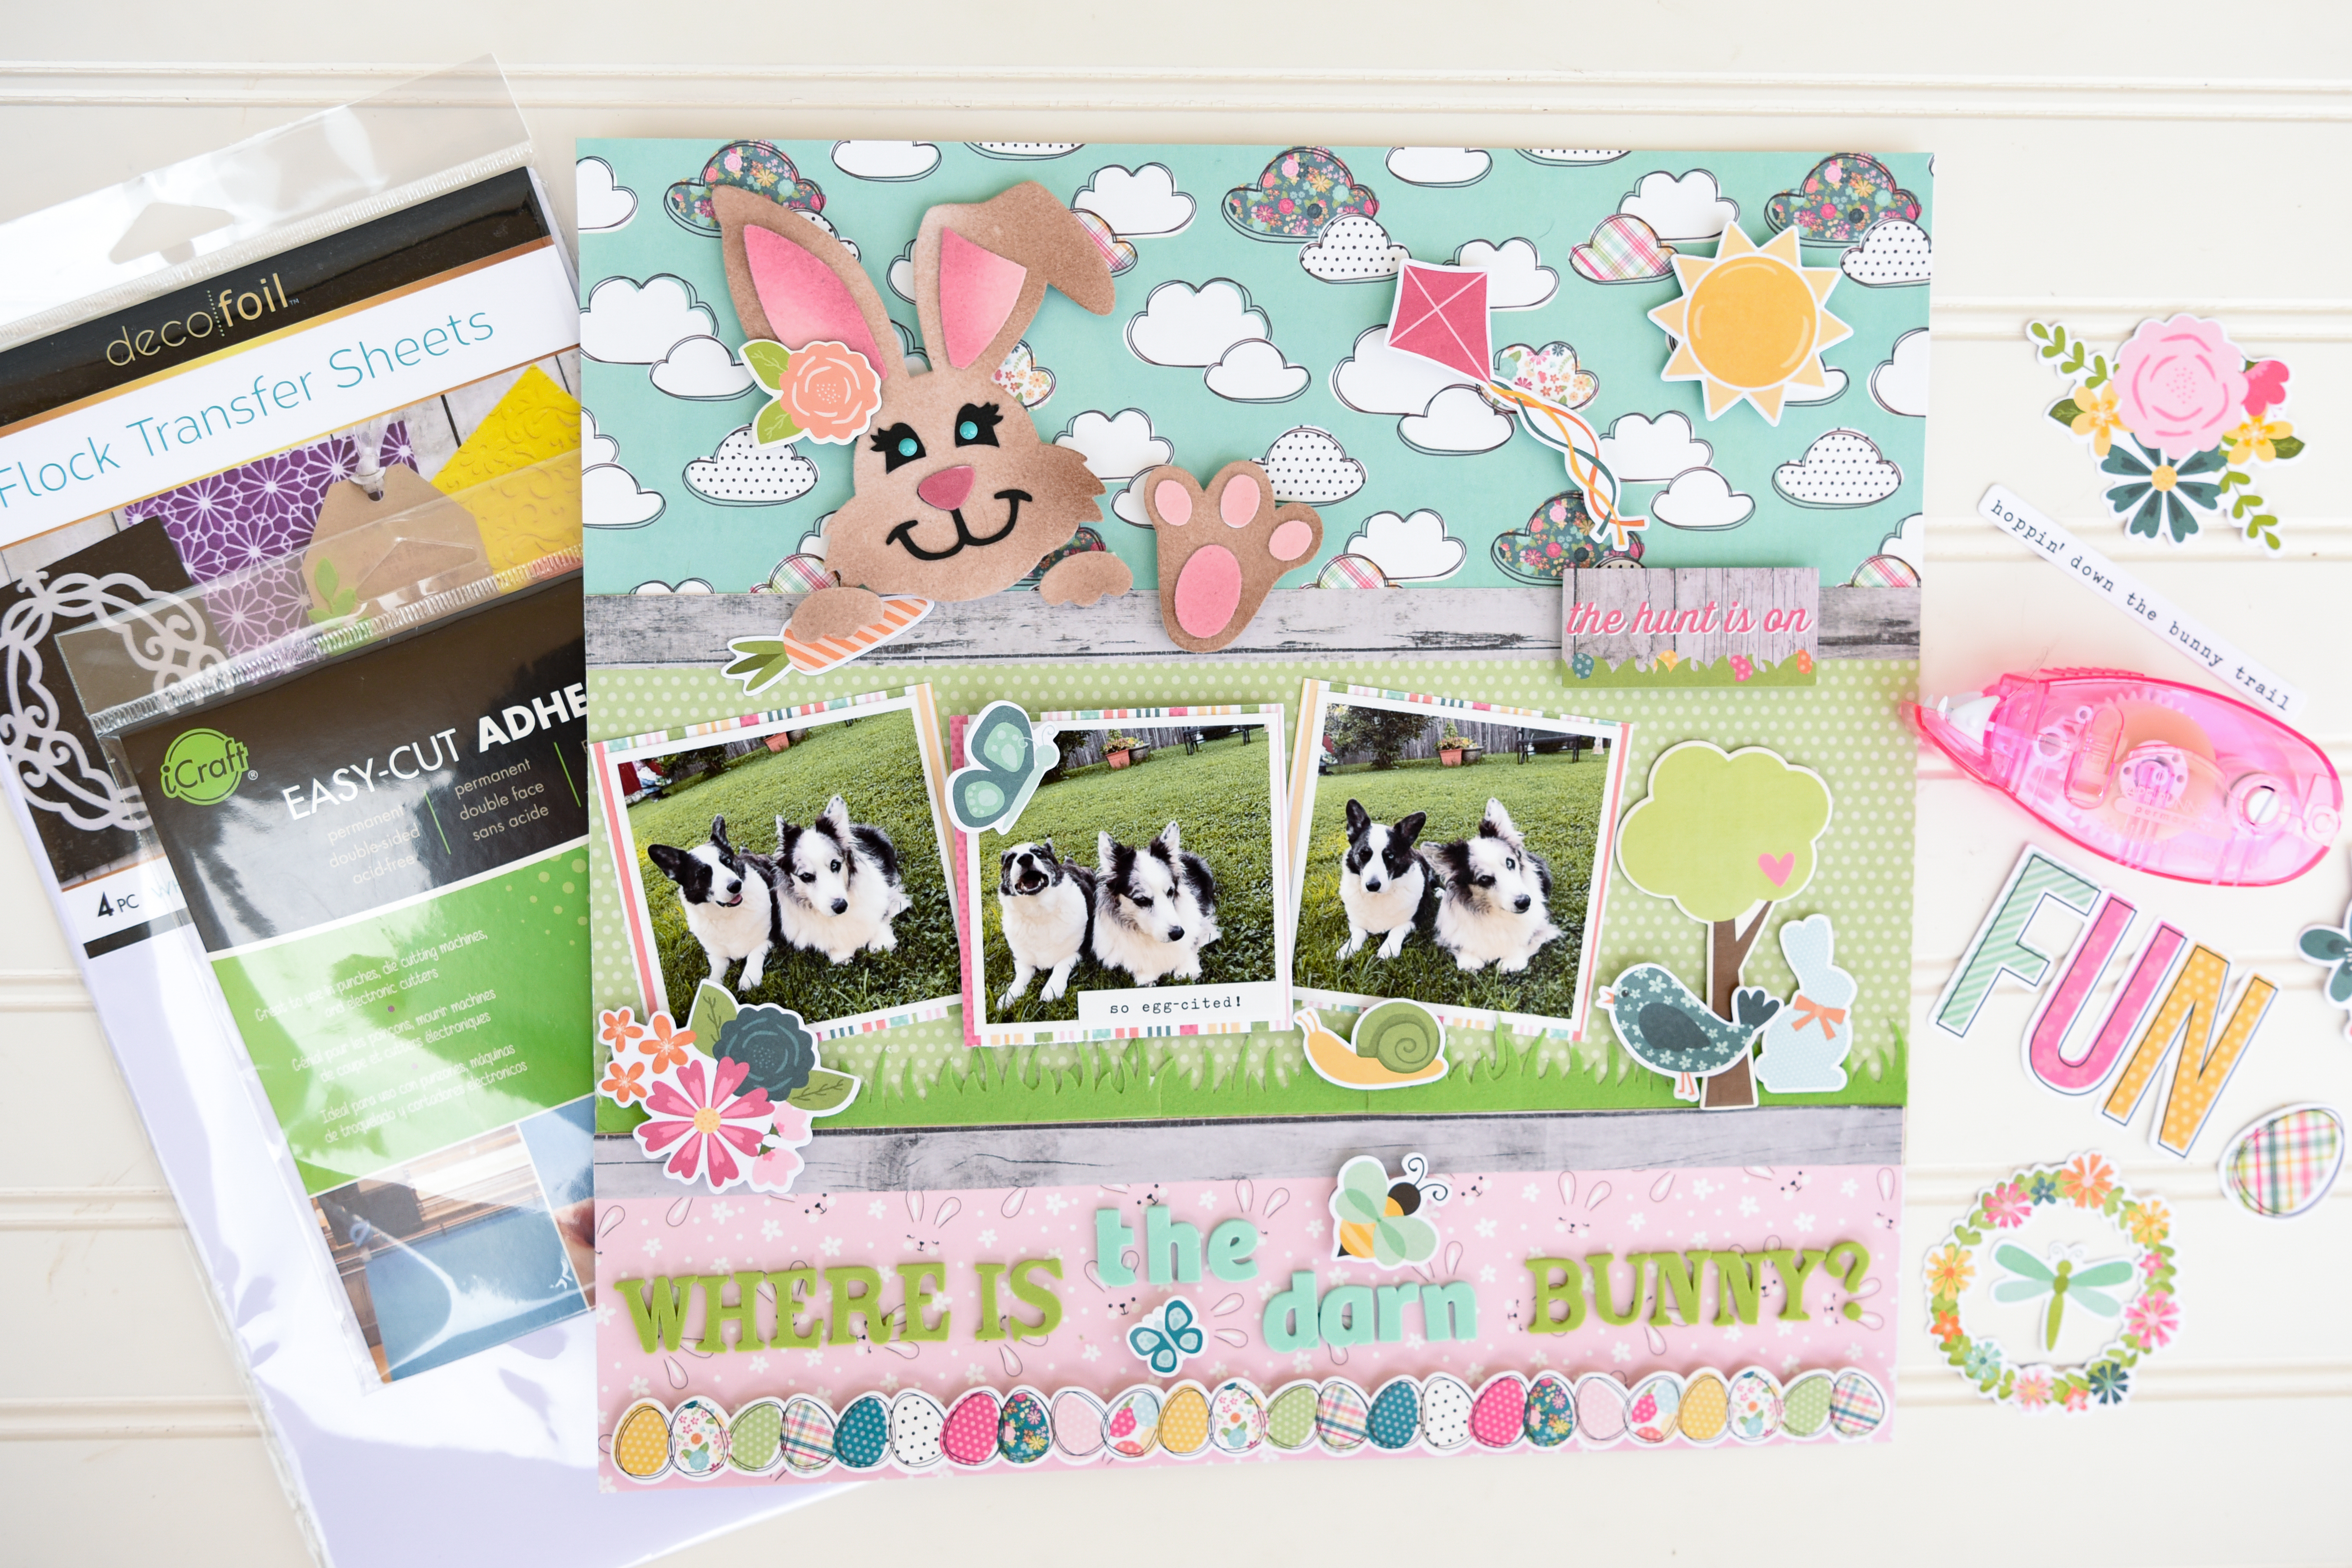 GLAM FS Where Is The Bunny Scrapbook Layout with Flock by Katrina Hunt-1